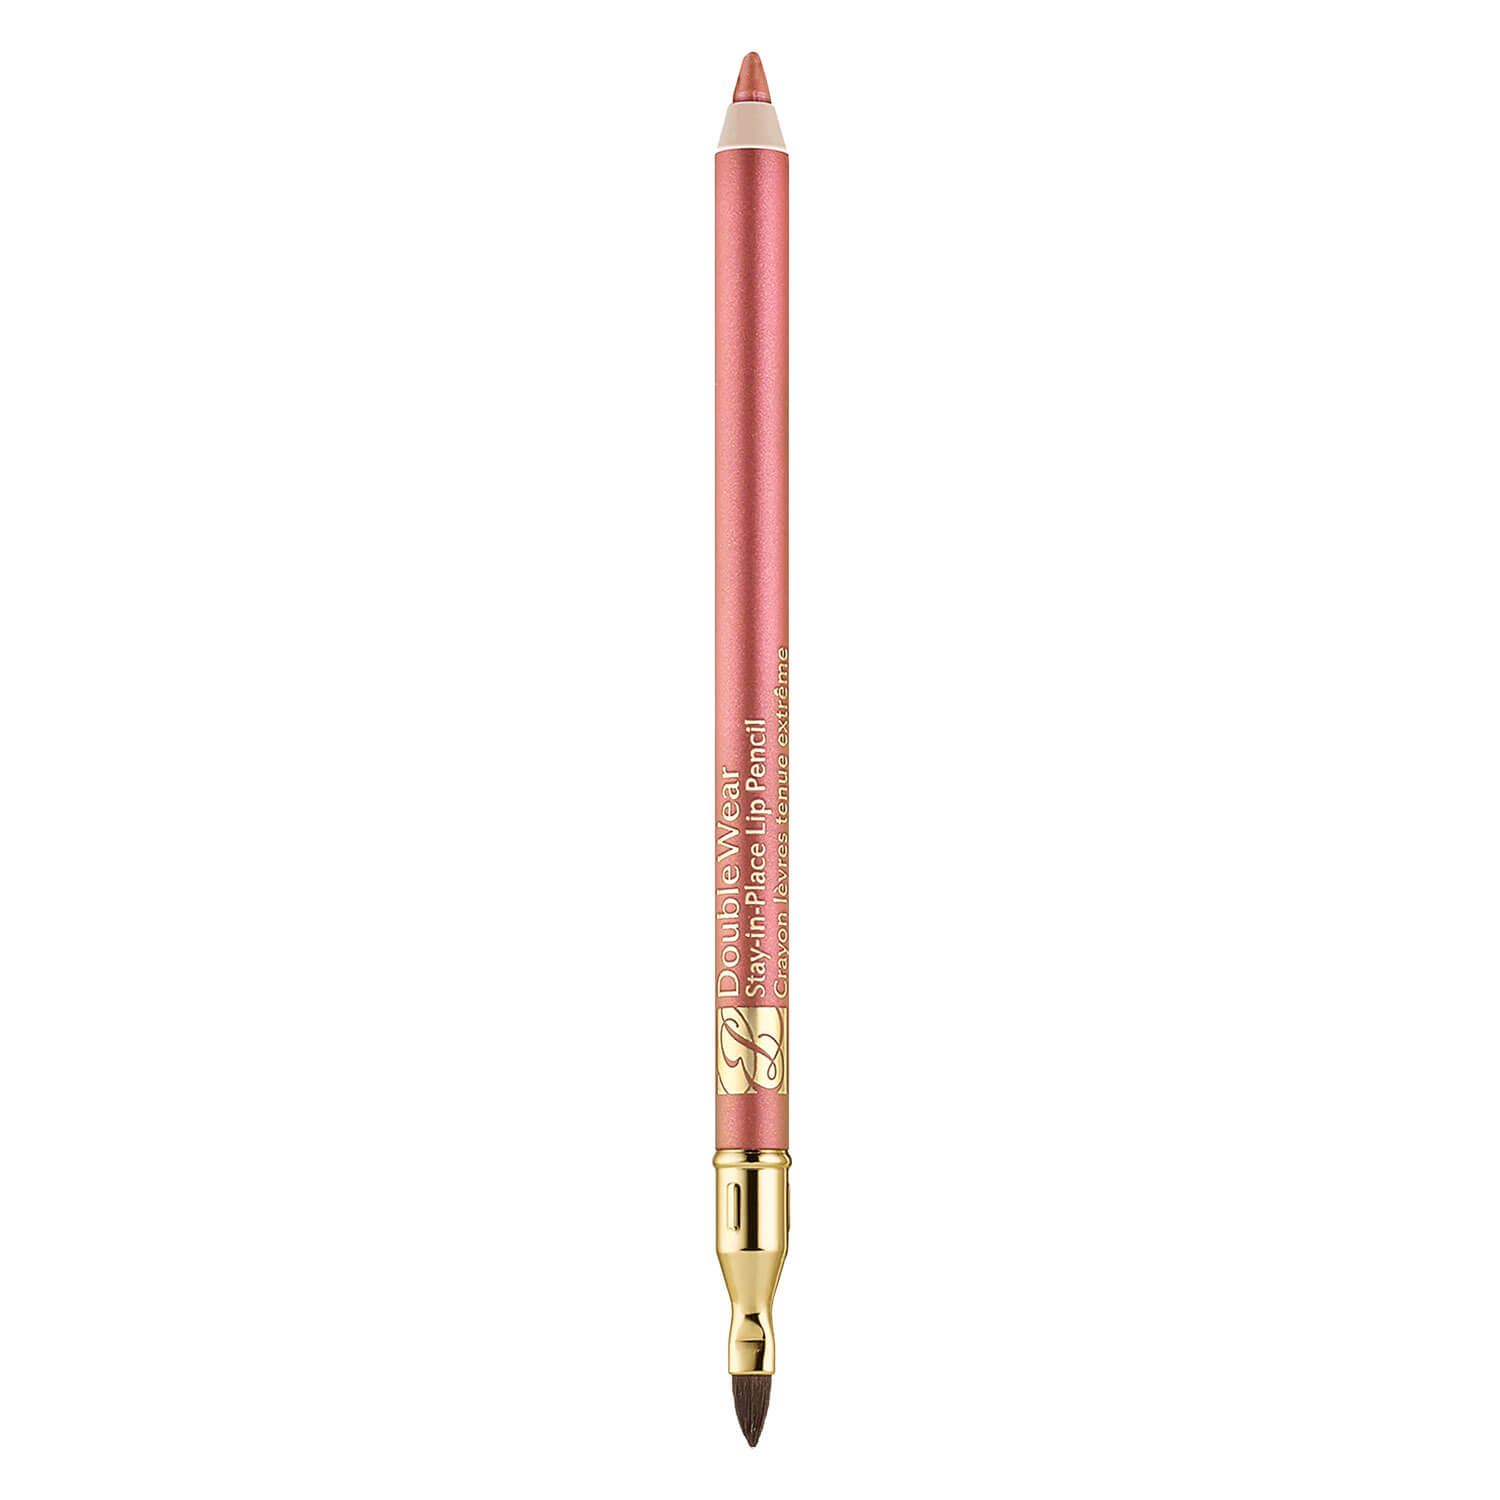 Double Wear - Stay-in-Place Lip Pencil Tawny